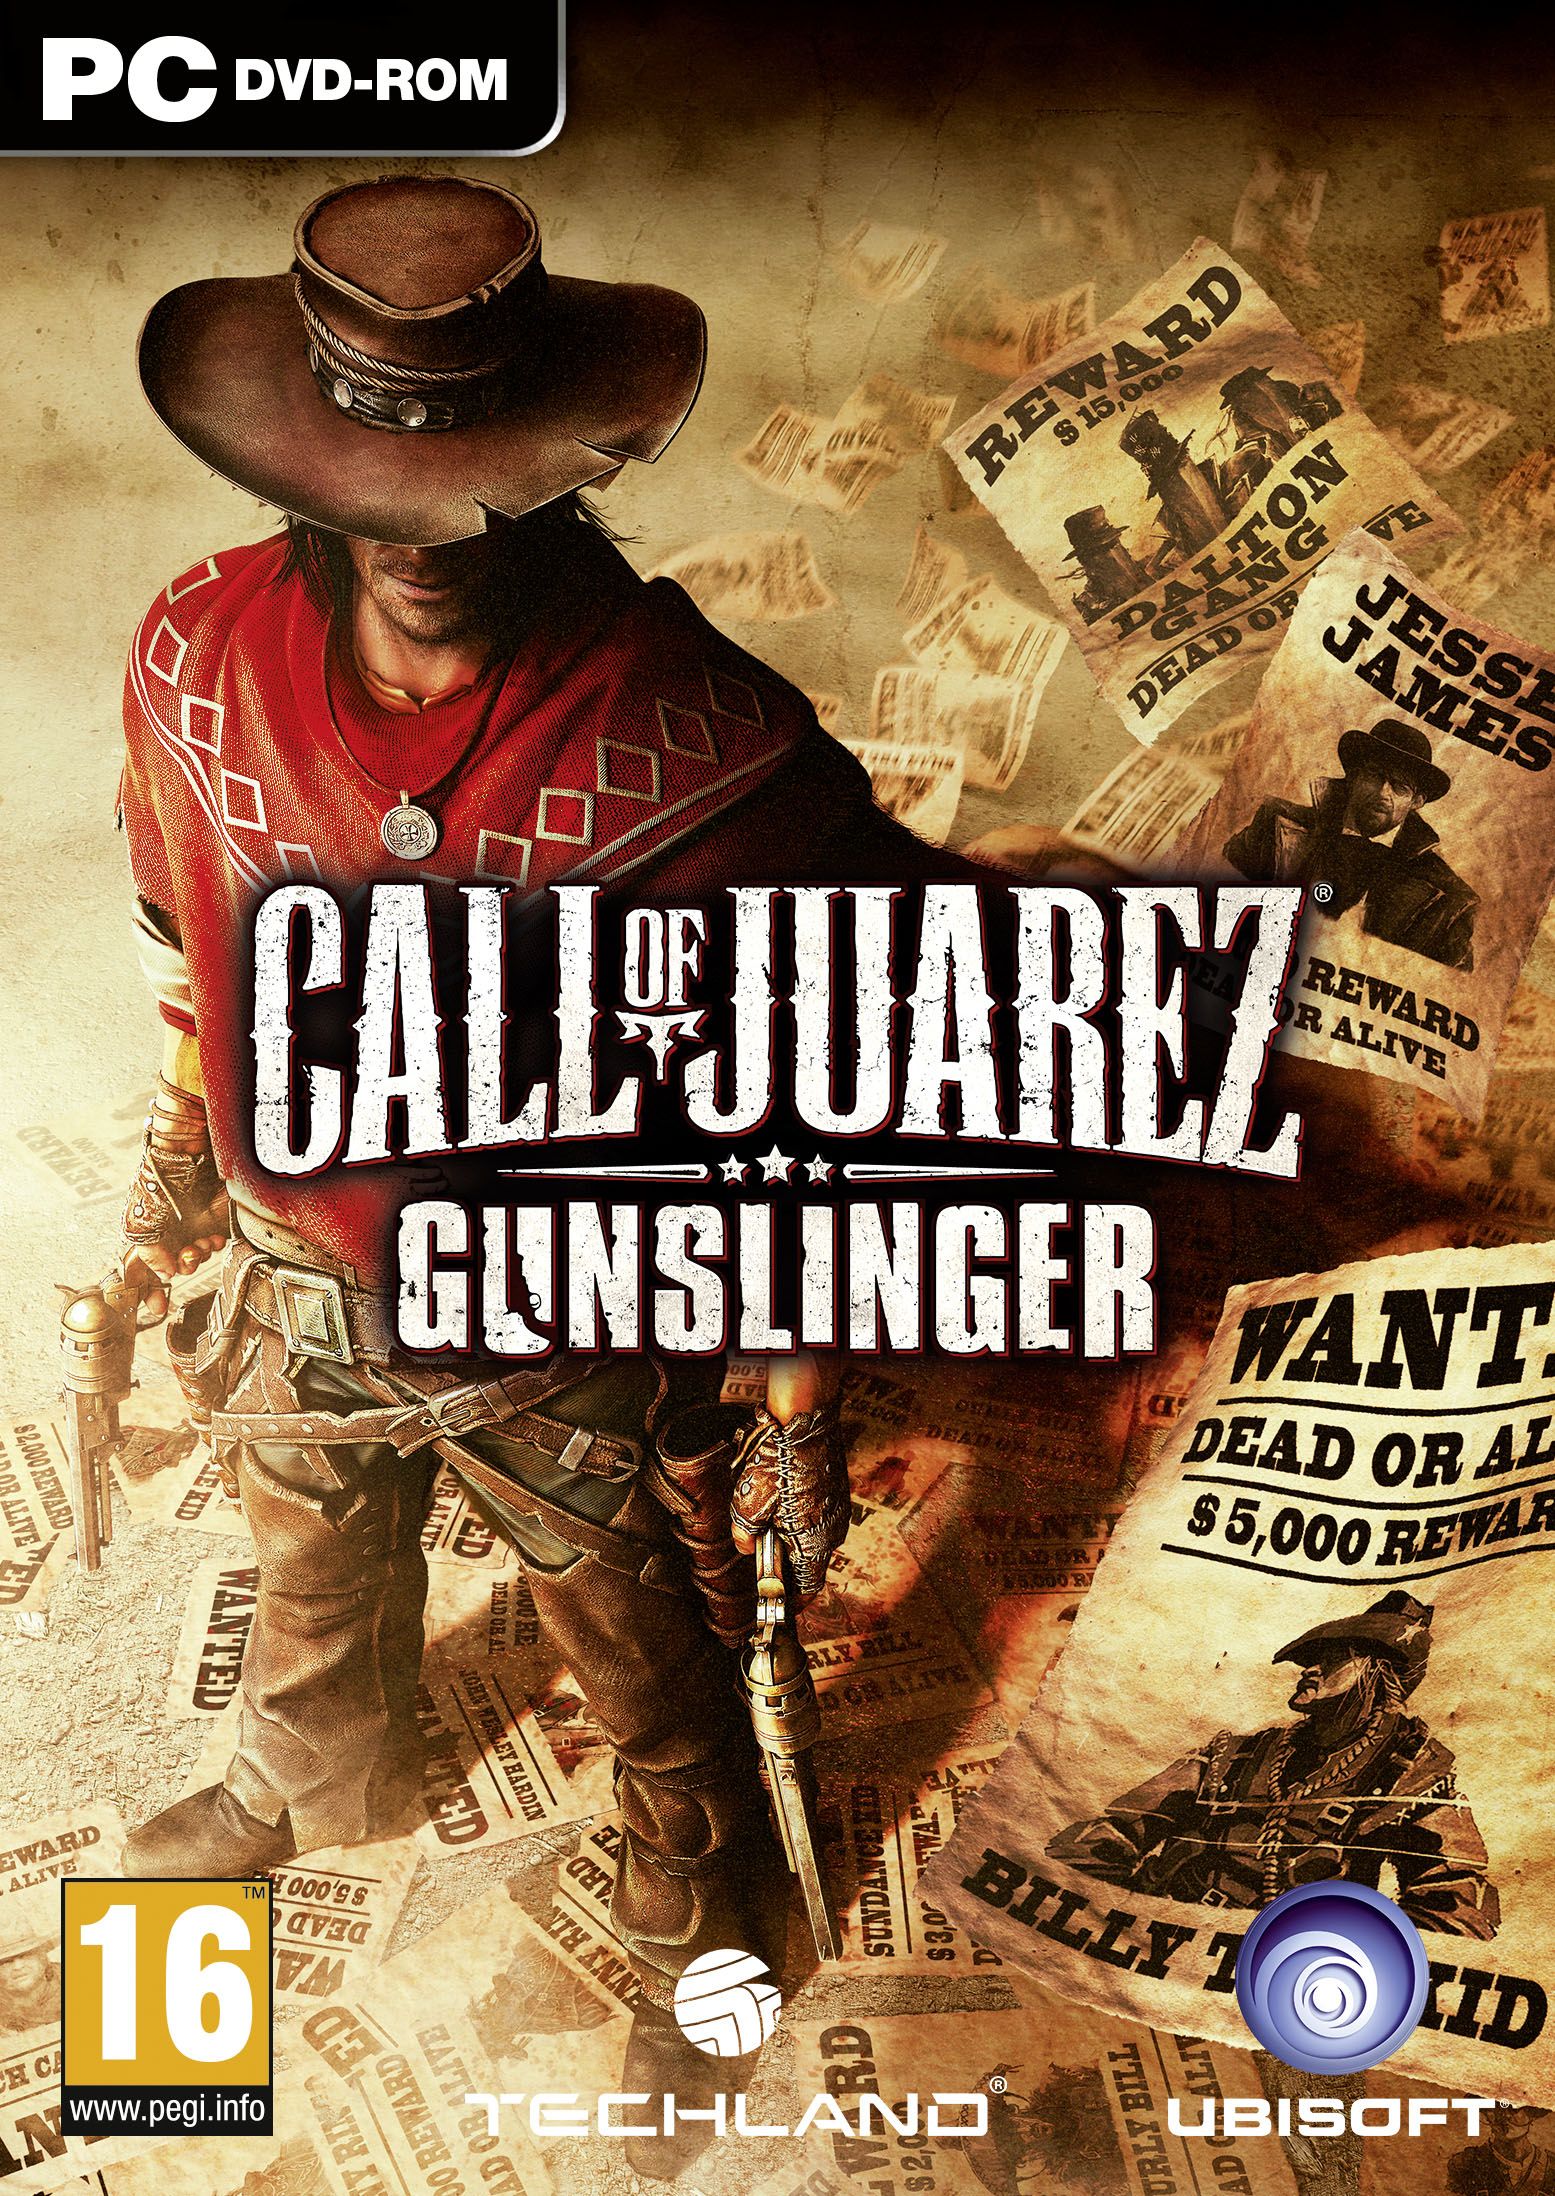 Image result for Call of Juarez Gunslinger cover pc